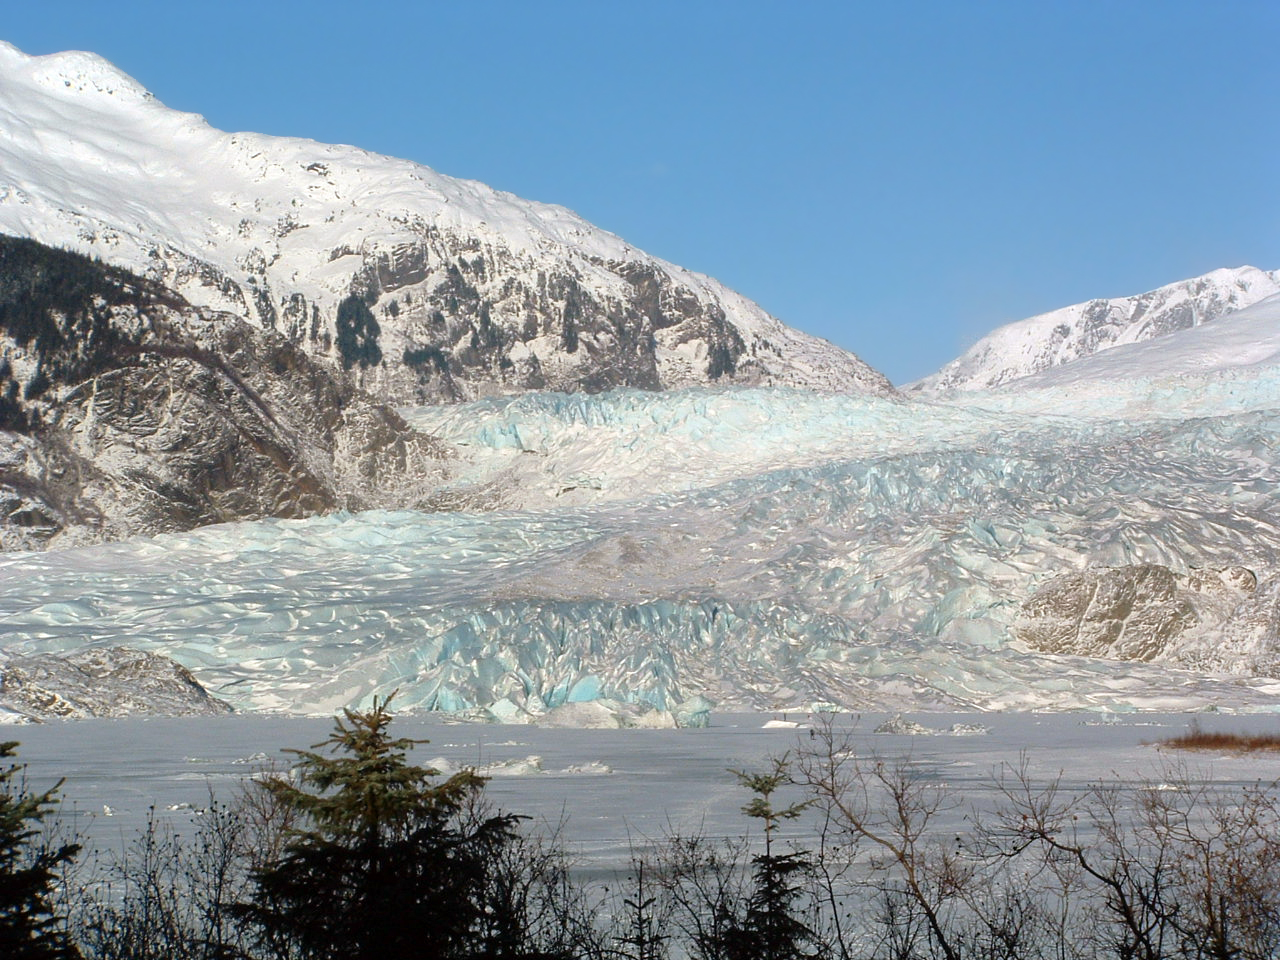 juneau alaska helicopter tours with J Is For Jade And Juneau Icefield on Mendenhall Glacier Trek moreover Why Juneau Is The Whale Watching Destination together with Alaska Salmon Fishing Helicopter Tours additionally Mendenhall Glacier Tour moreover Misty Fjords Cruise.